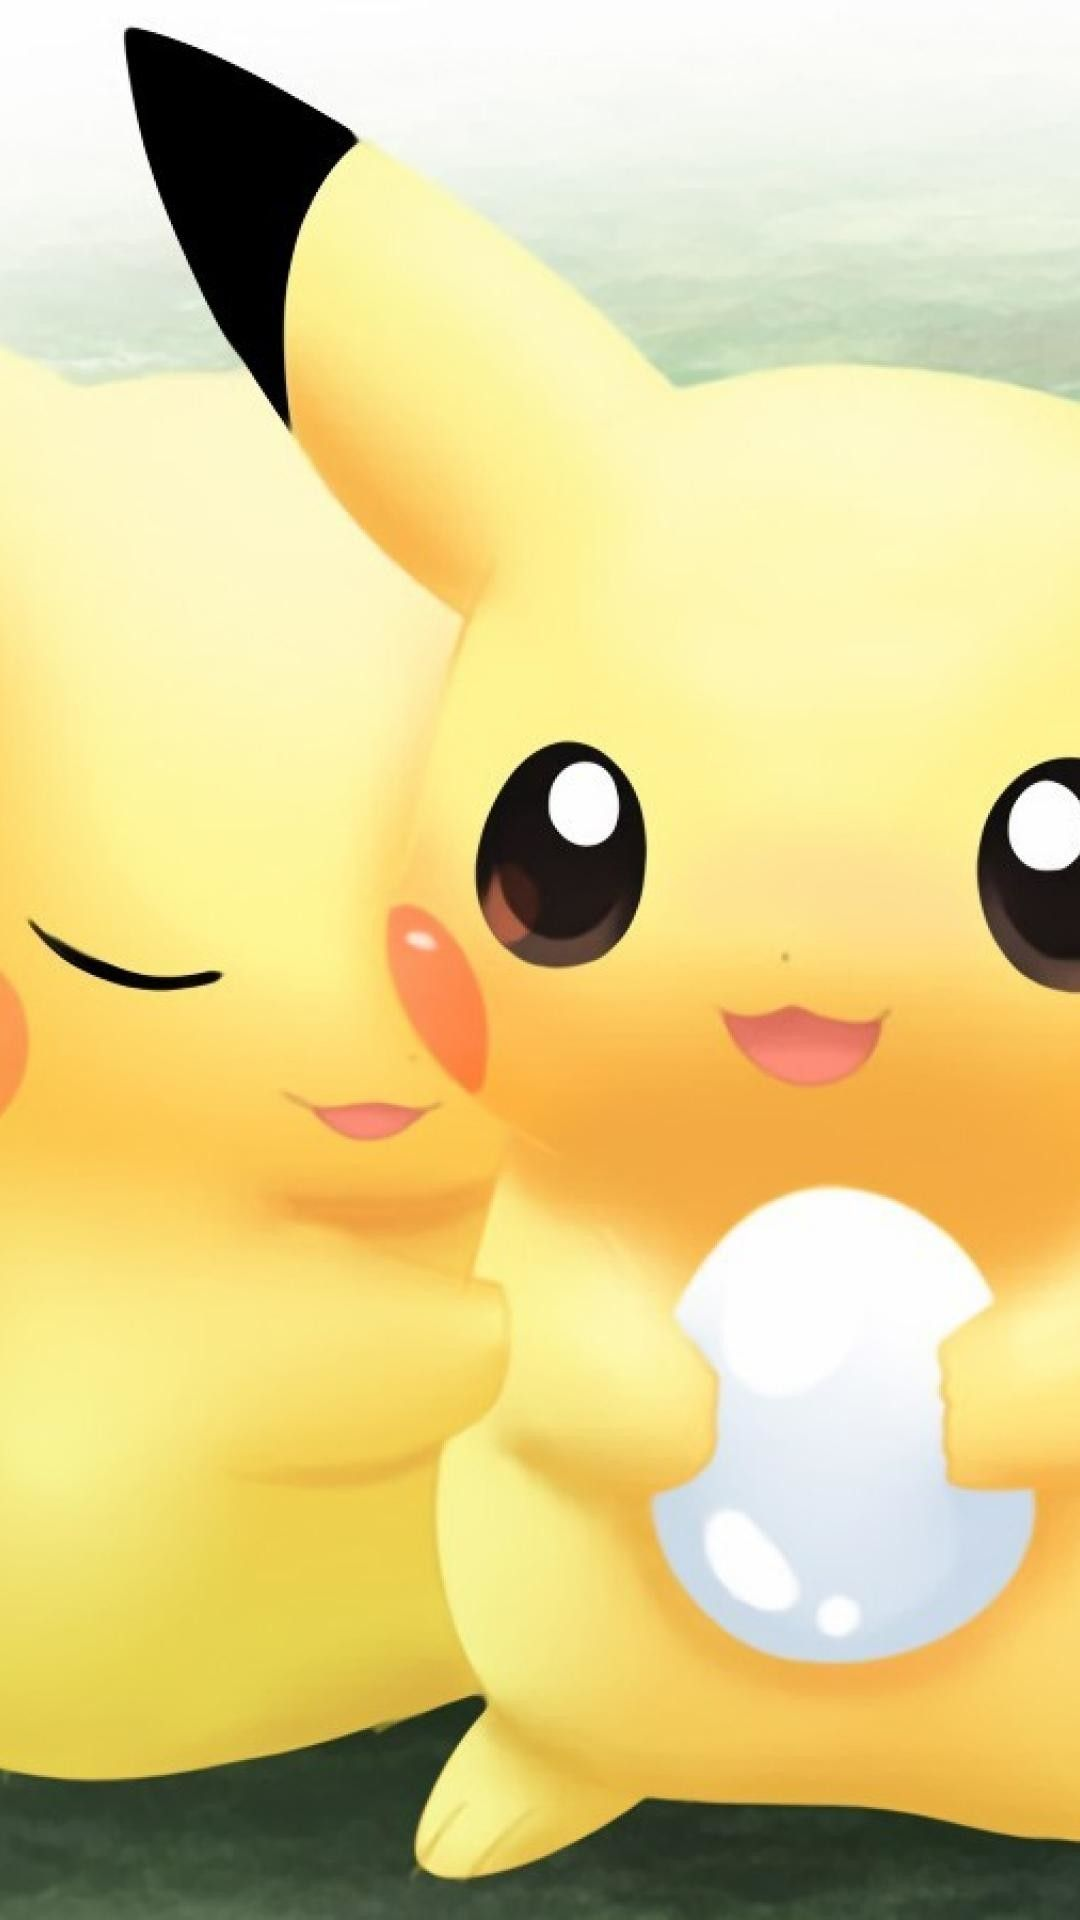 Cute Pikachu Hd Wallpapers For Mobile